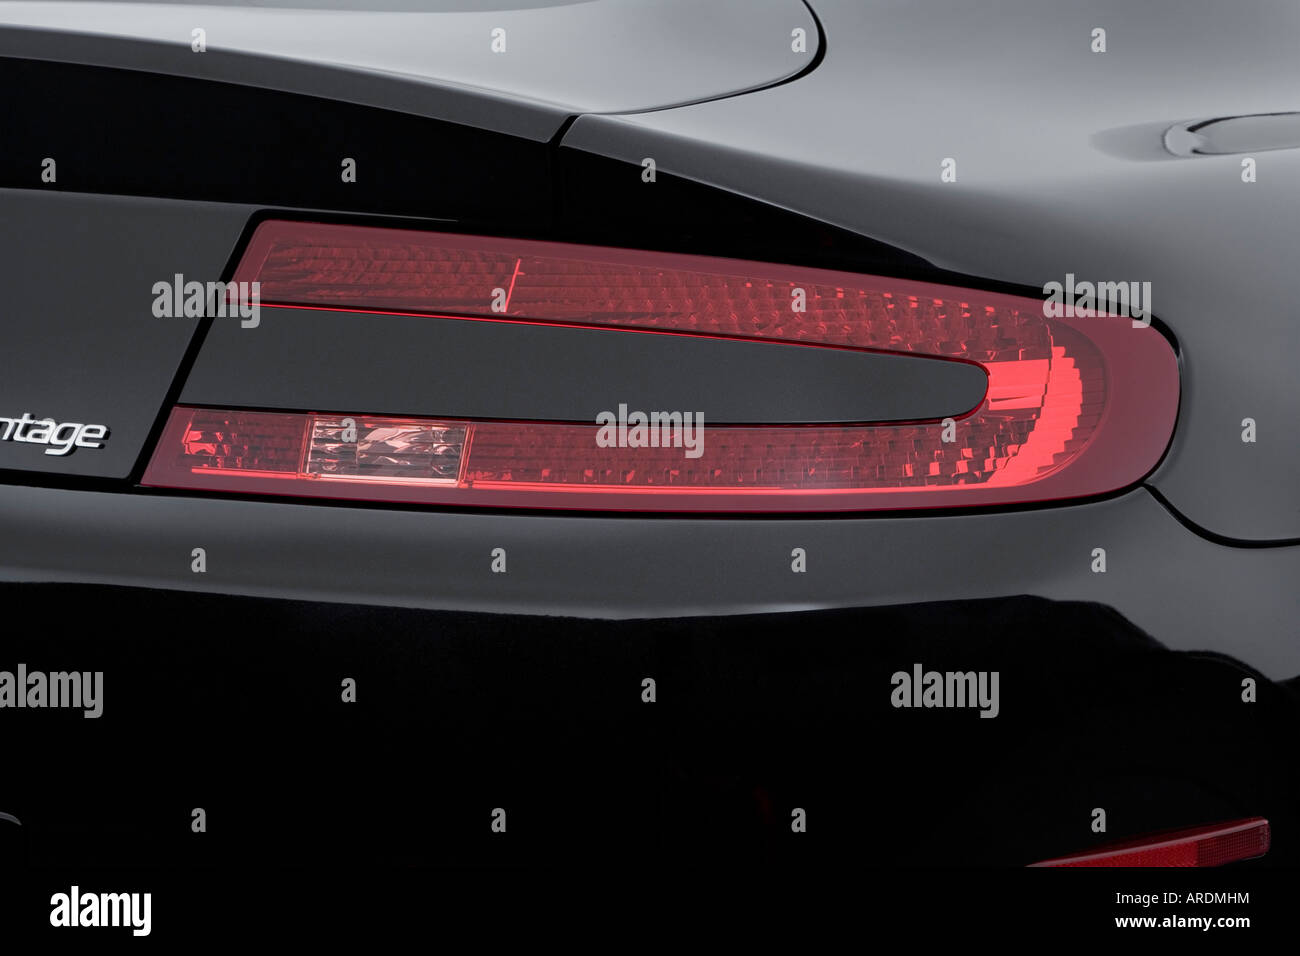 2006 Aston Martin V8 Vantage In Black Tail Light Stock Photo